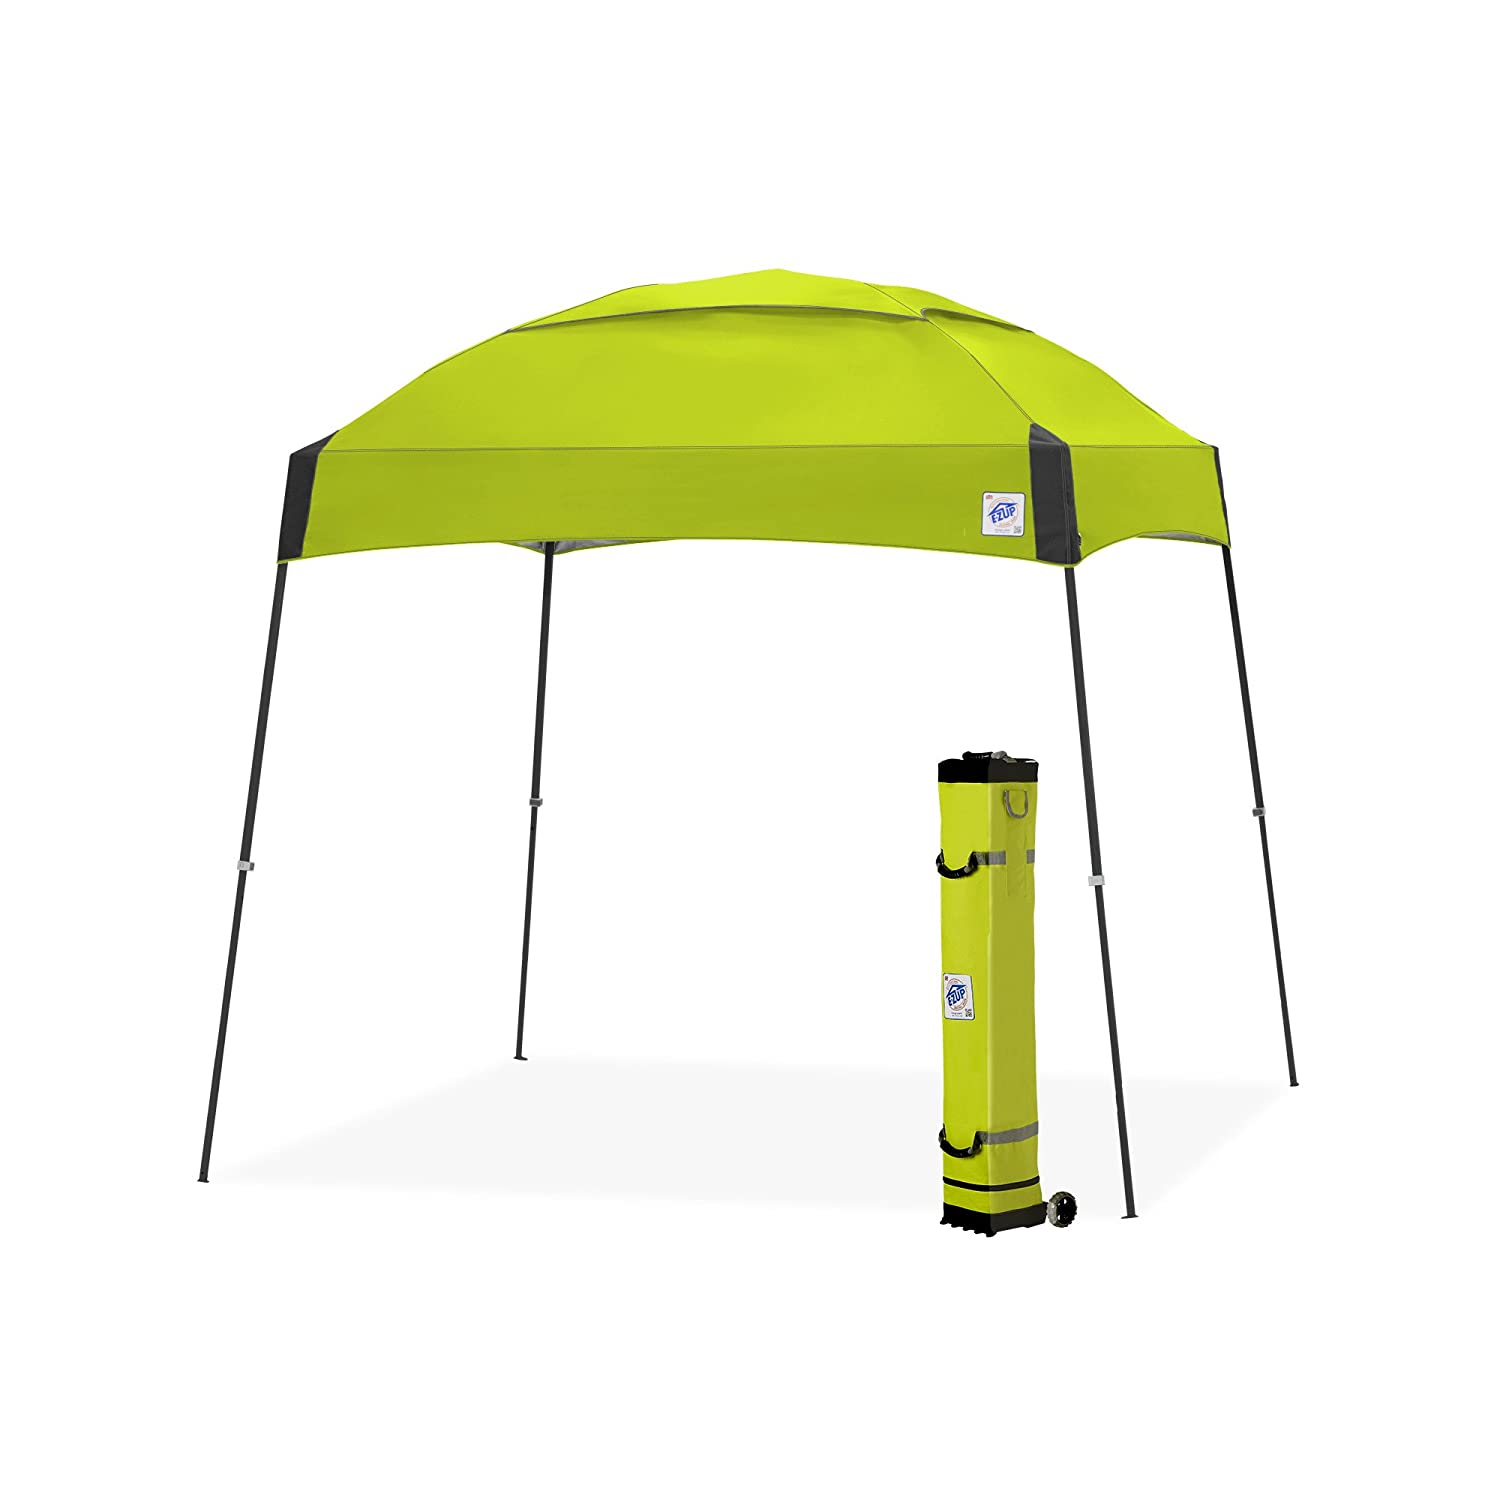 Amazon.com : E-Z UP Dome Instant Shelter Canopy, 10 by 10\', Limeade ...